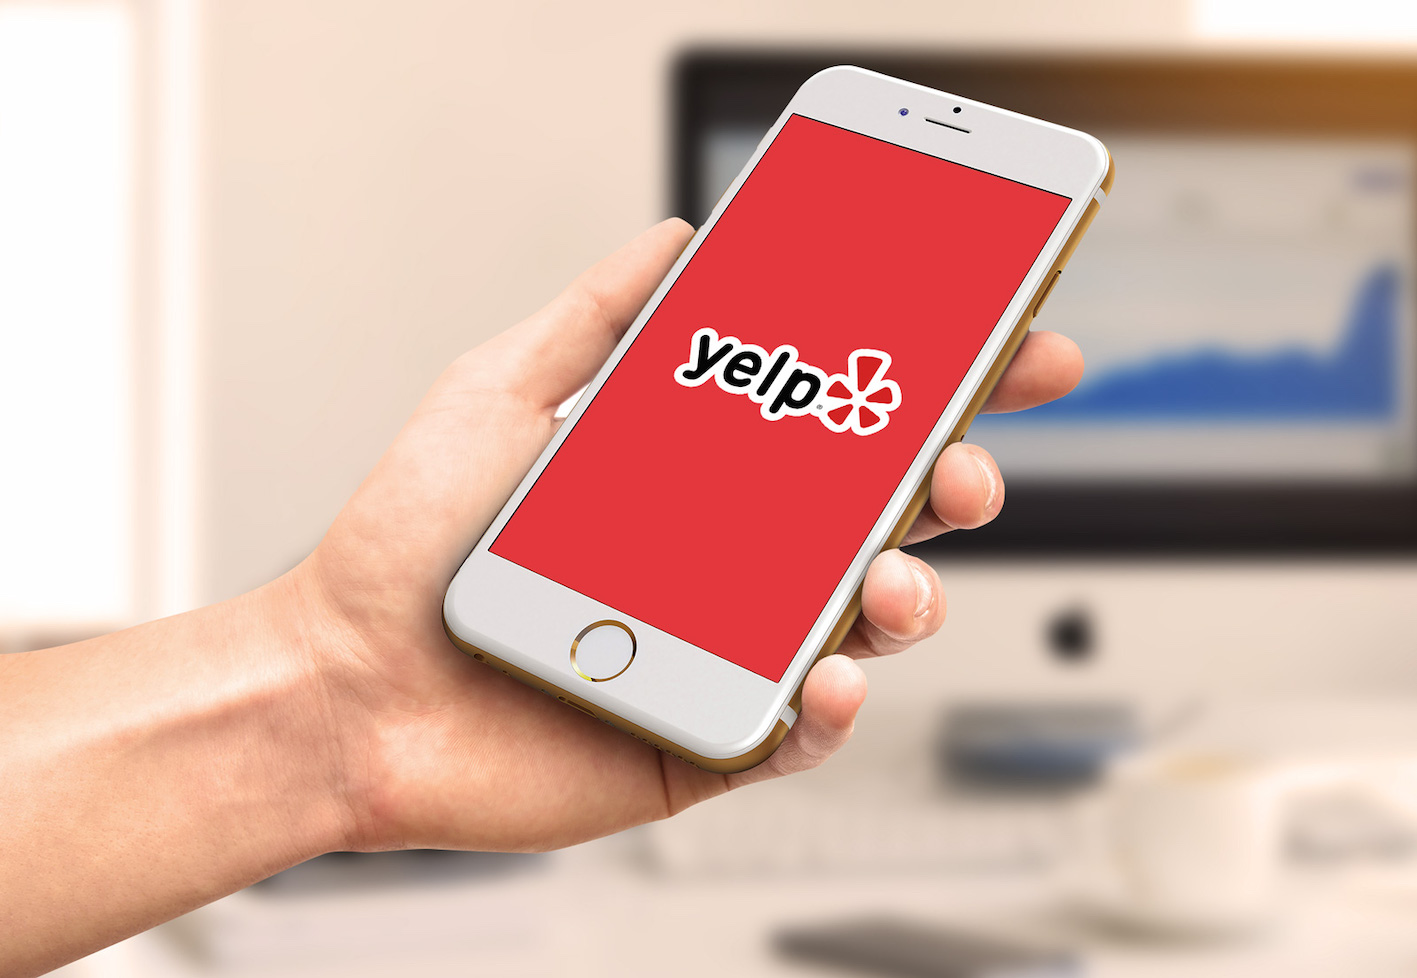 See how you can make your business stand out on Yelp with Genbook